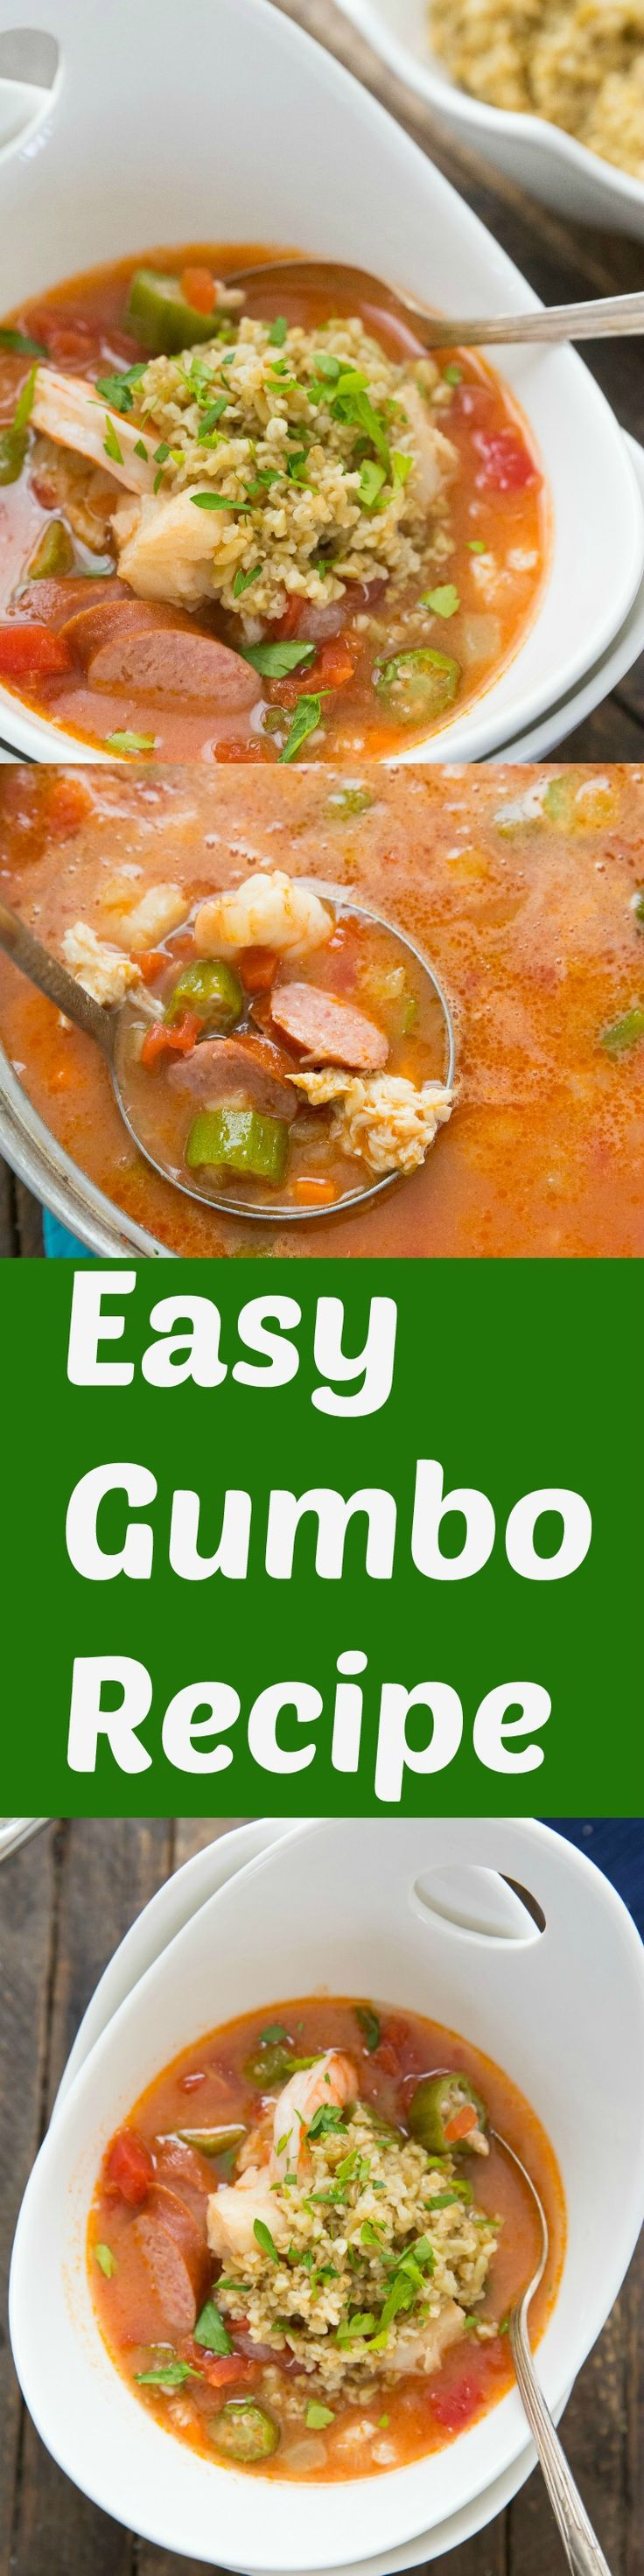 An easy gumbo recipe that is sure to please a crowd! This recipe is filled with veggies and seafood! It is hearty and delicious!